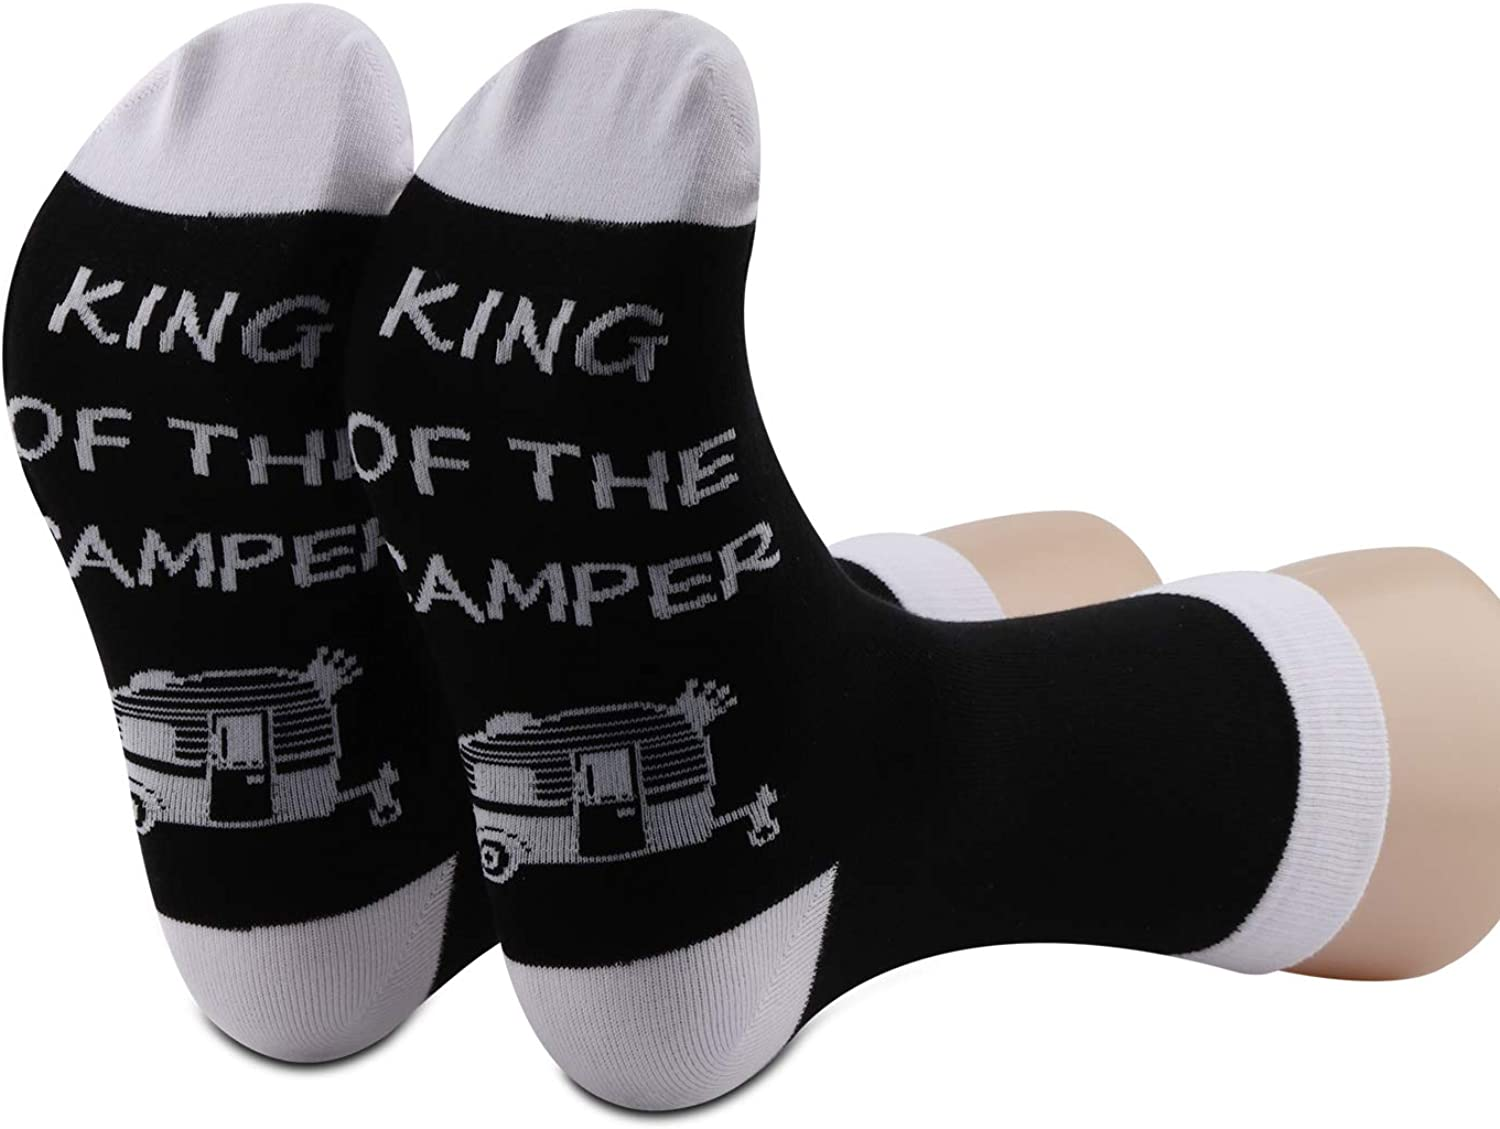 Queen of the Camper Socks Camping Socks Gifts For Her If you can read this socks